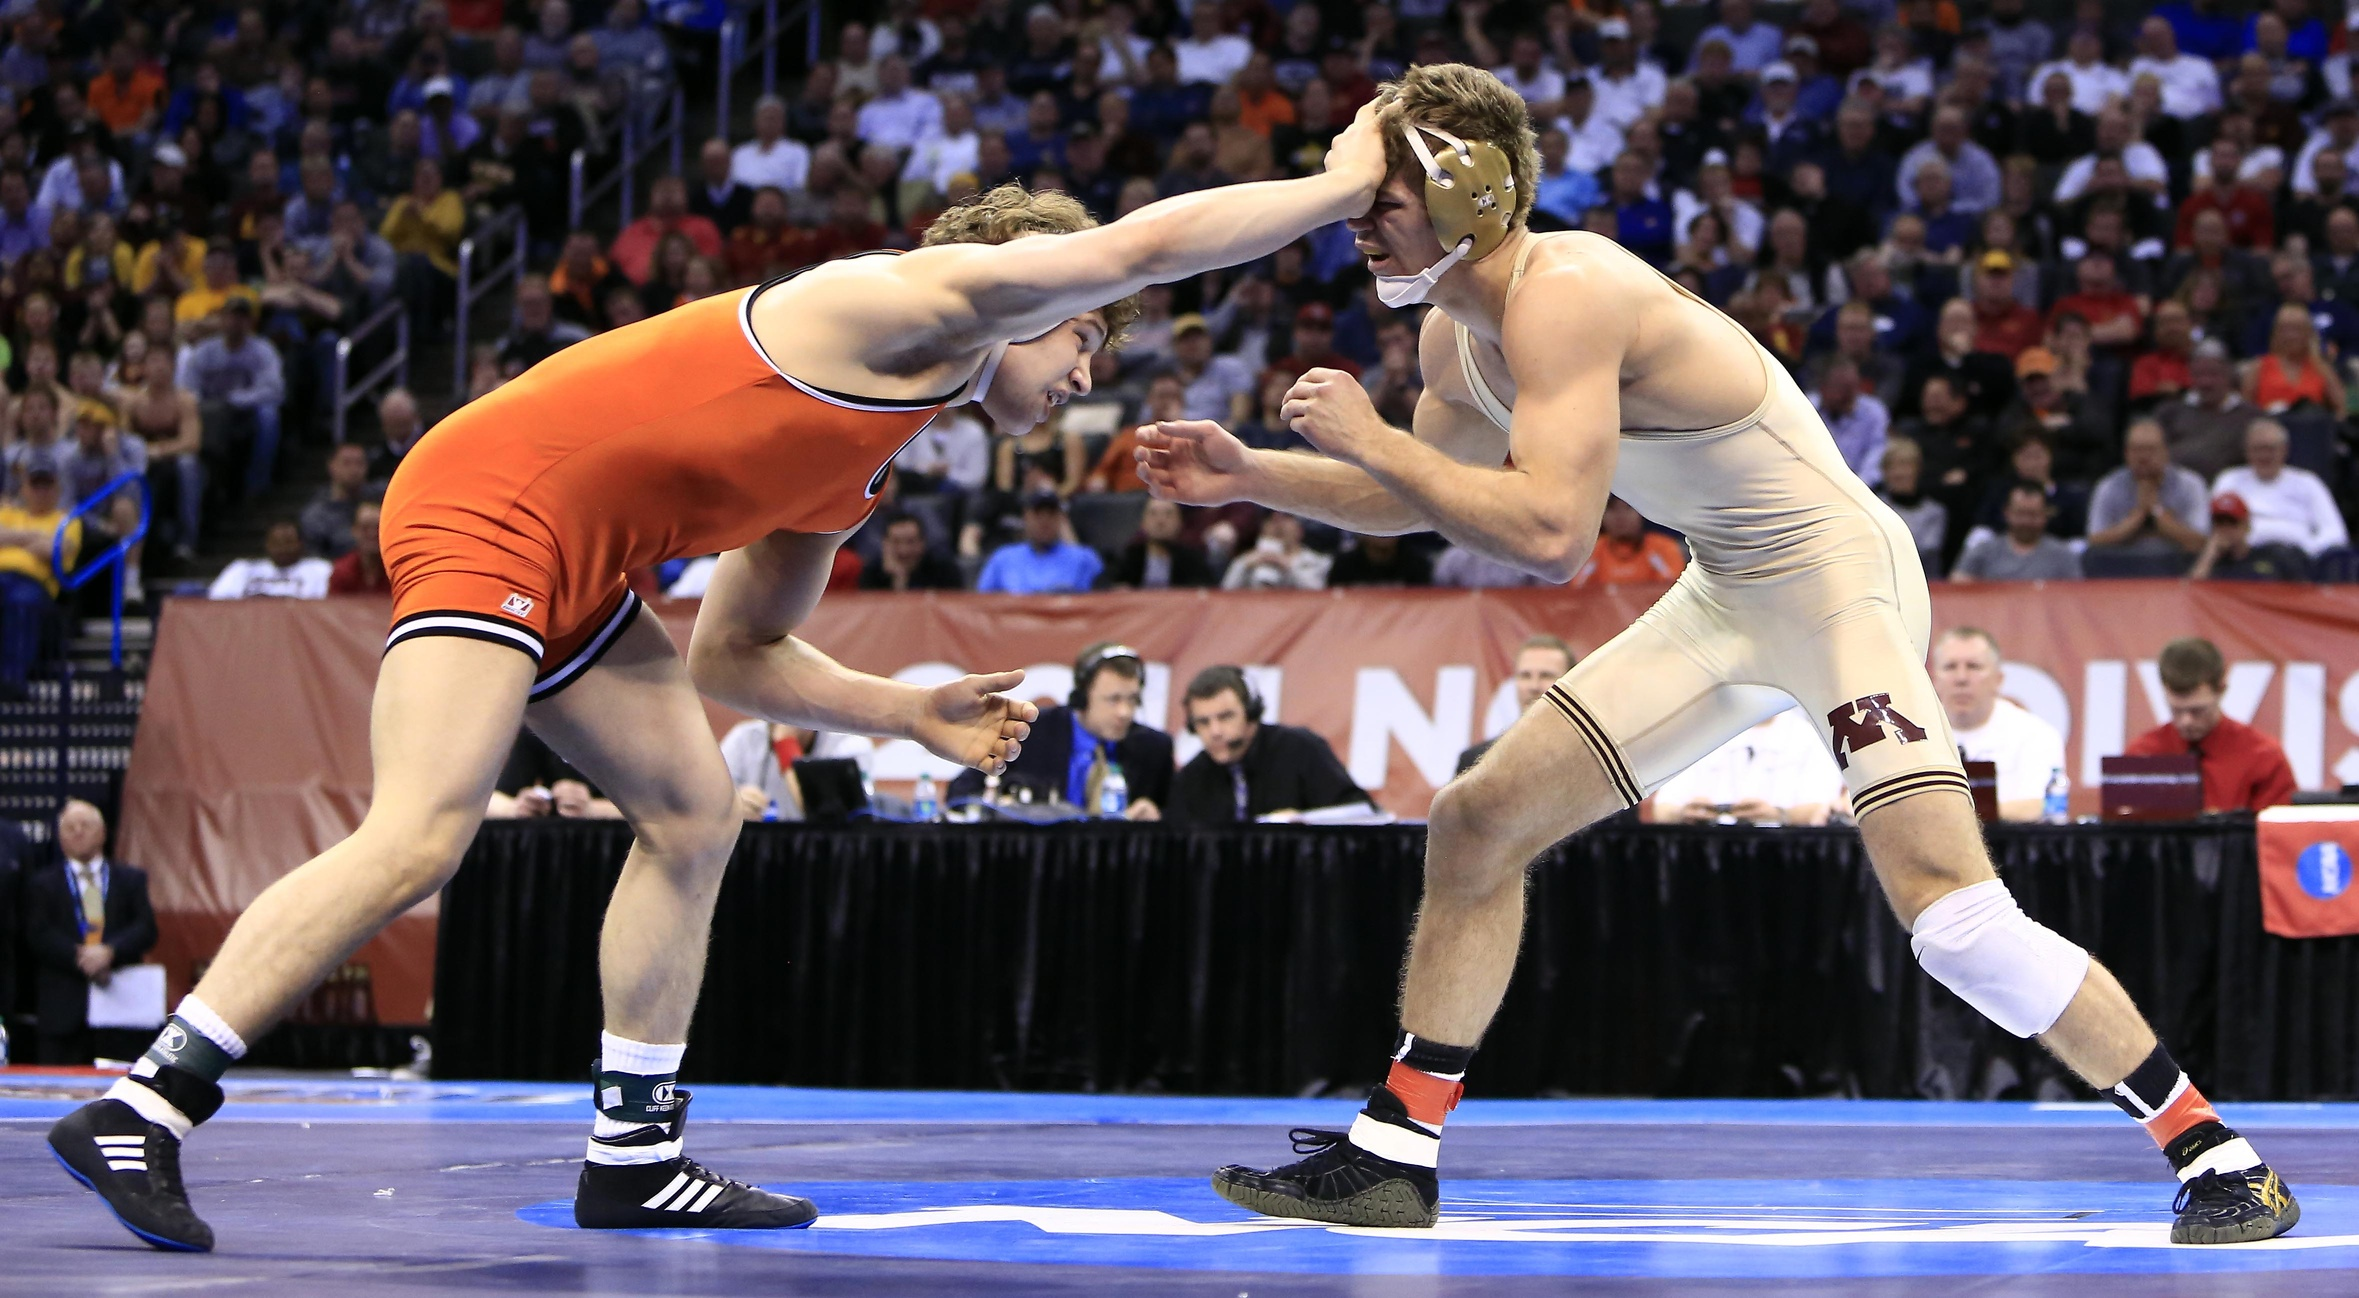 Alex Dierenger will try to capture back-to-back NCAA titles. (USATSI)